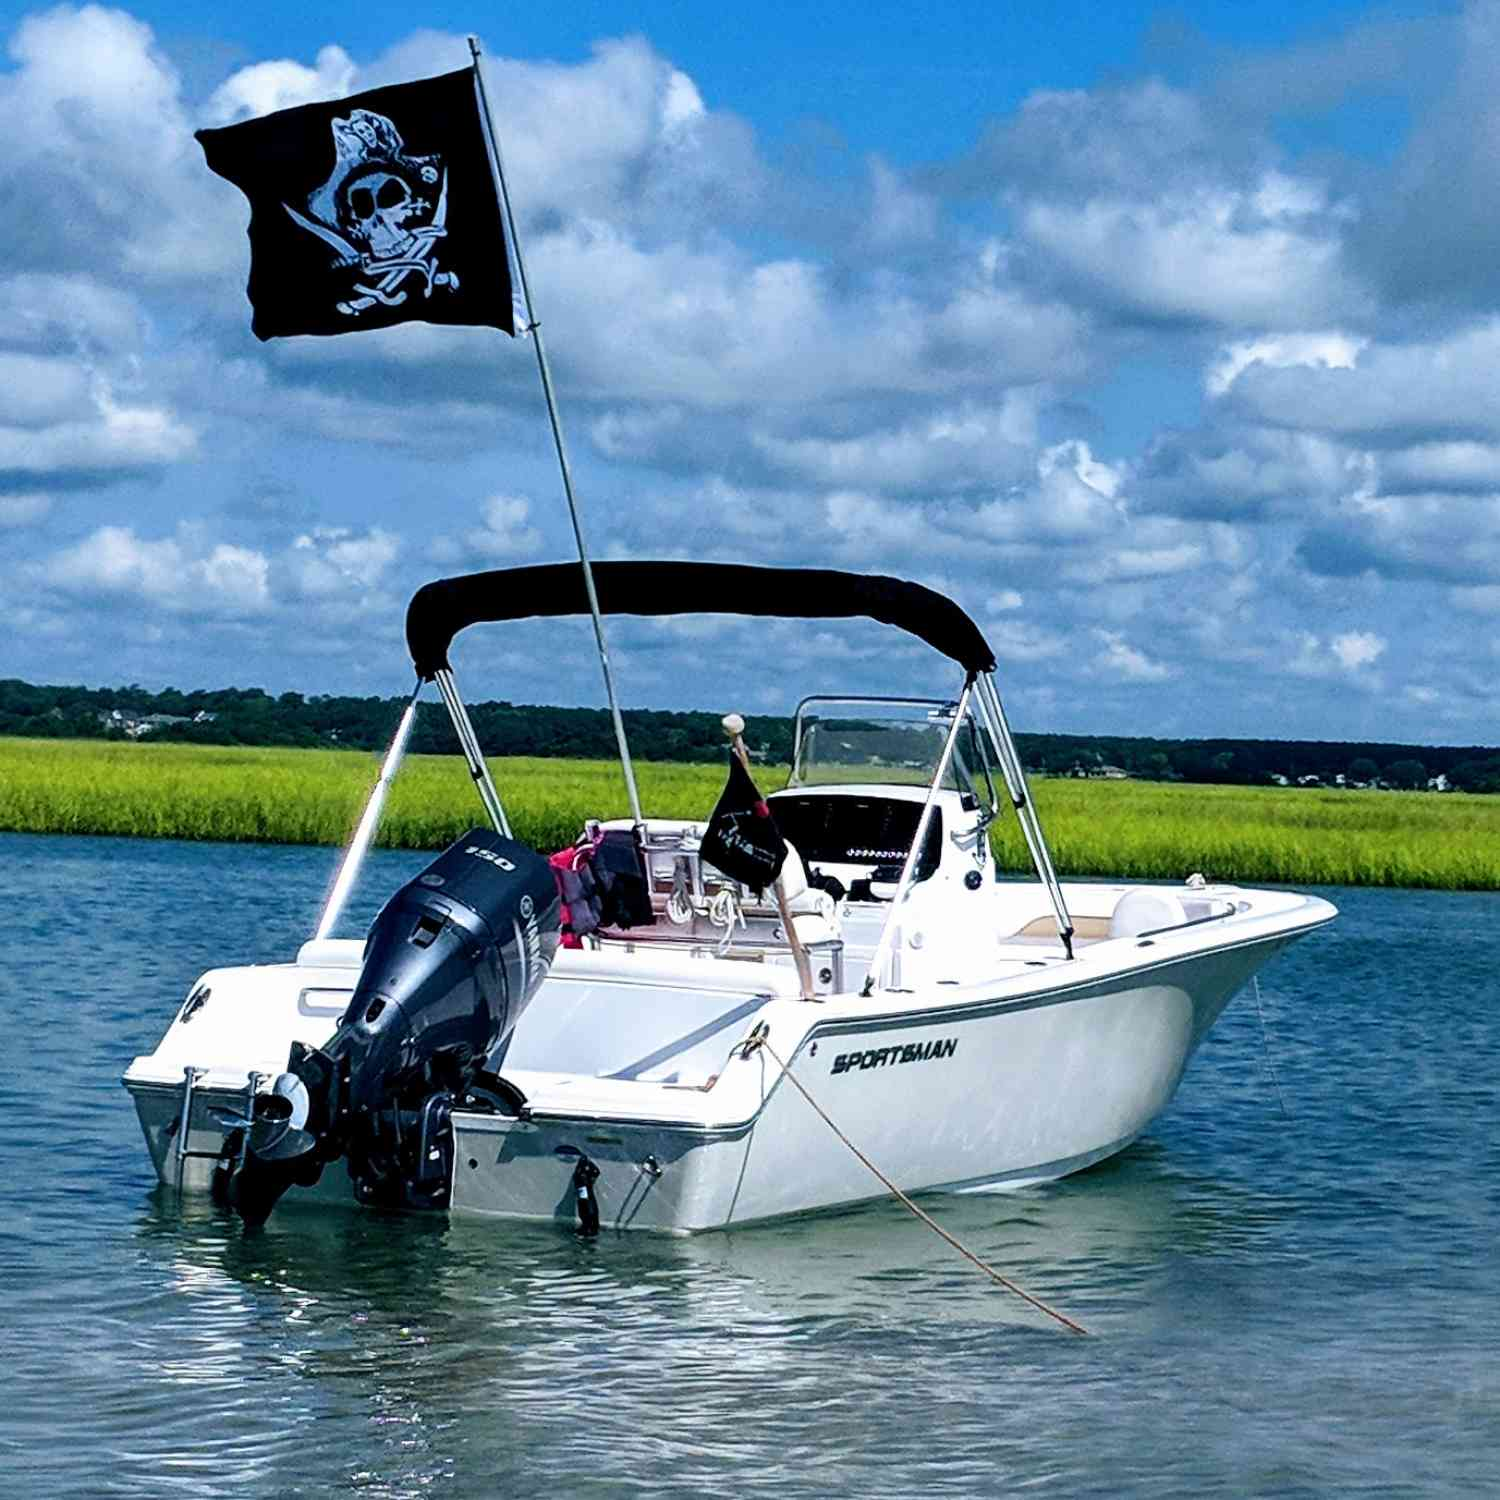 "Title: ""Aarrrgh""en't you jealous? - On board their Sportsman Heritage 211 Center Console - Location: Surf City, NC. Participating in the Photo Contest #SportsmanJuly2018"